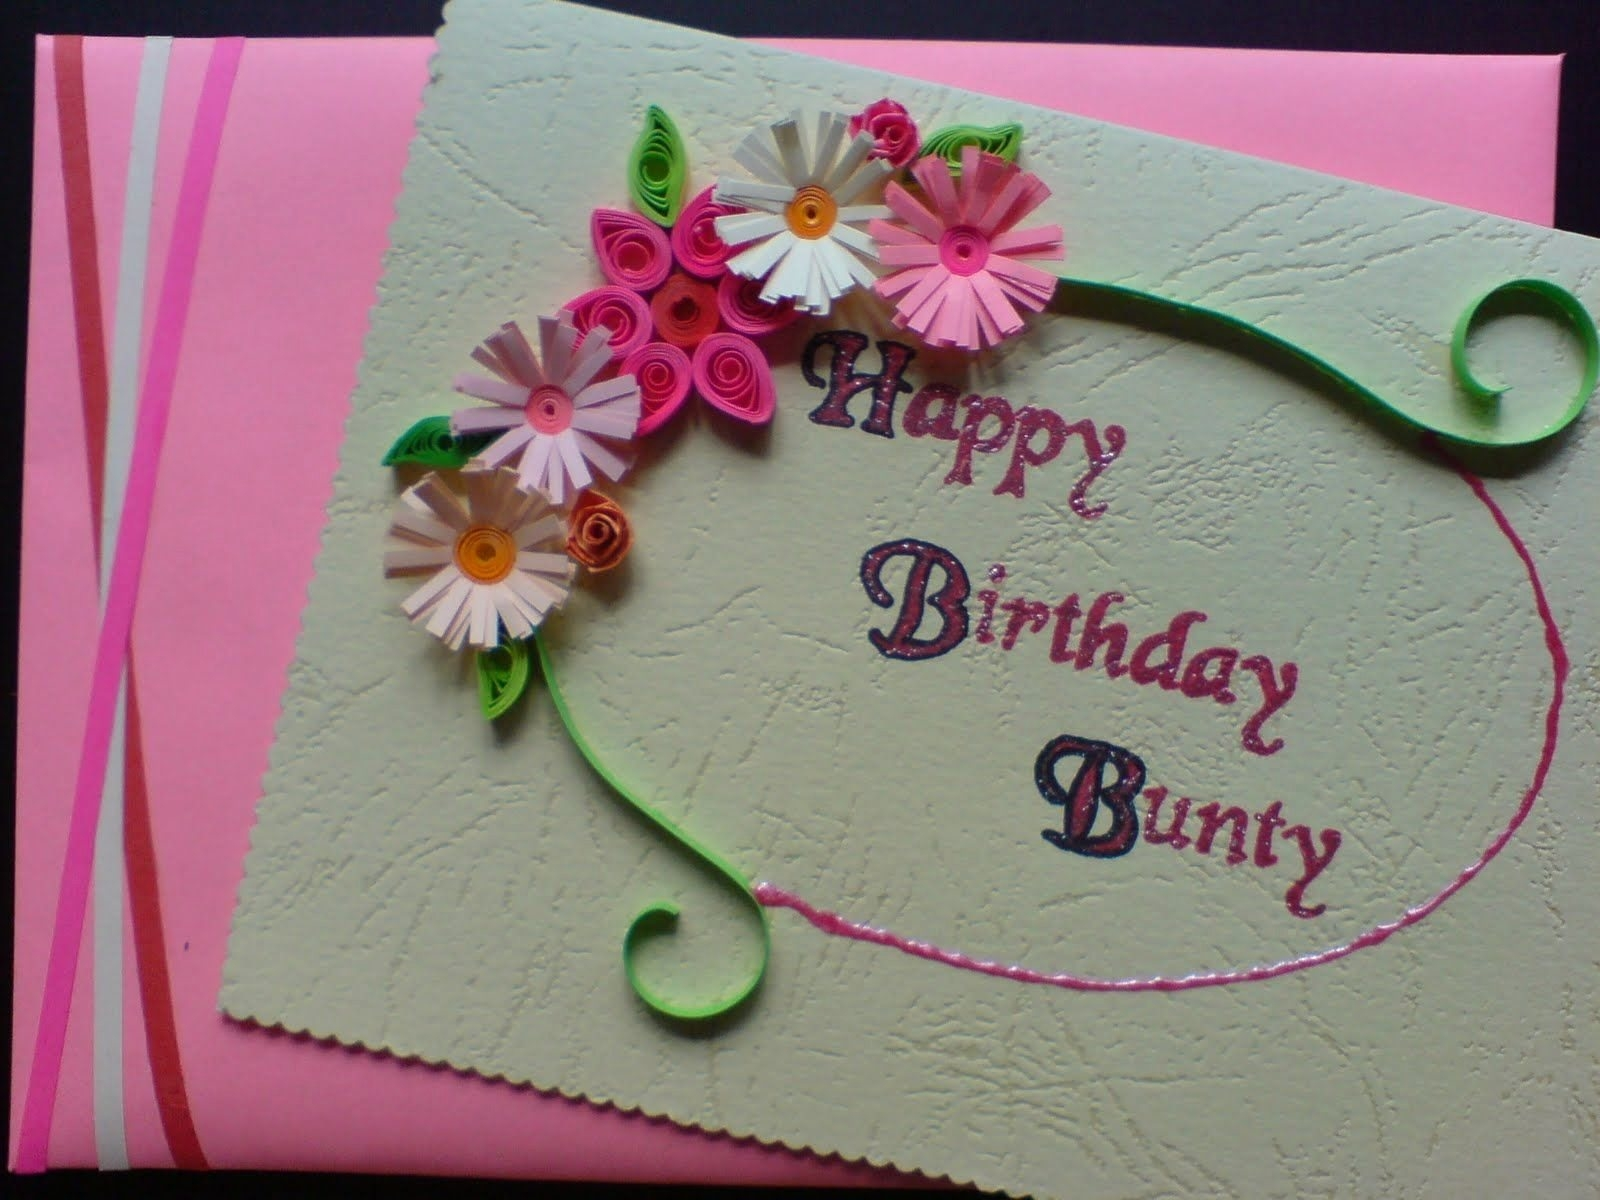 images of handmade greeting cards for birthday ; easy-and-beautiful-handmade-birthday-cards-awesome-handmade-with-regard-to-beautiful-handmade-greeting-cards-for-birthday-ideas